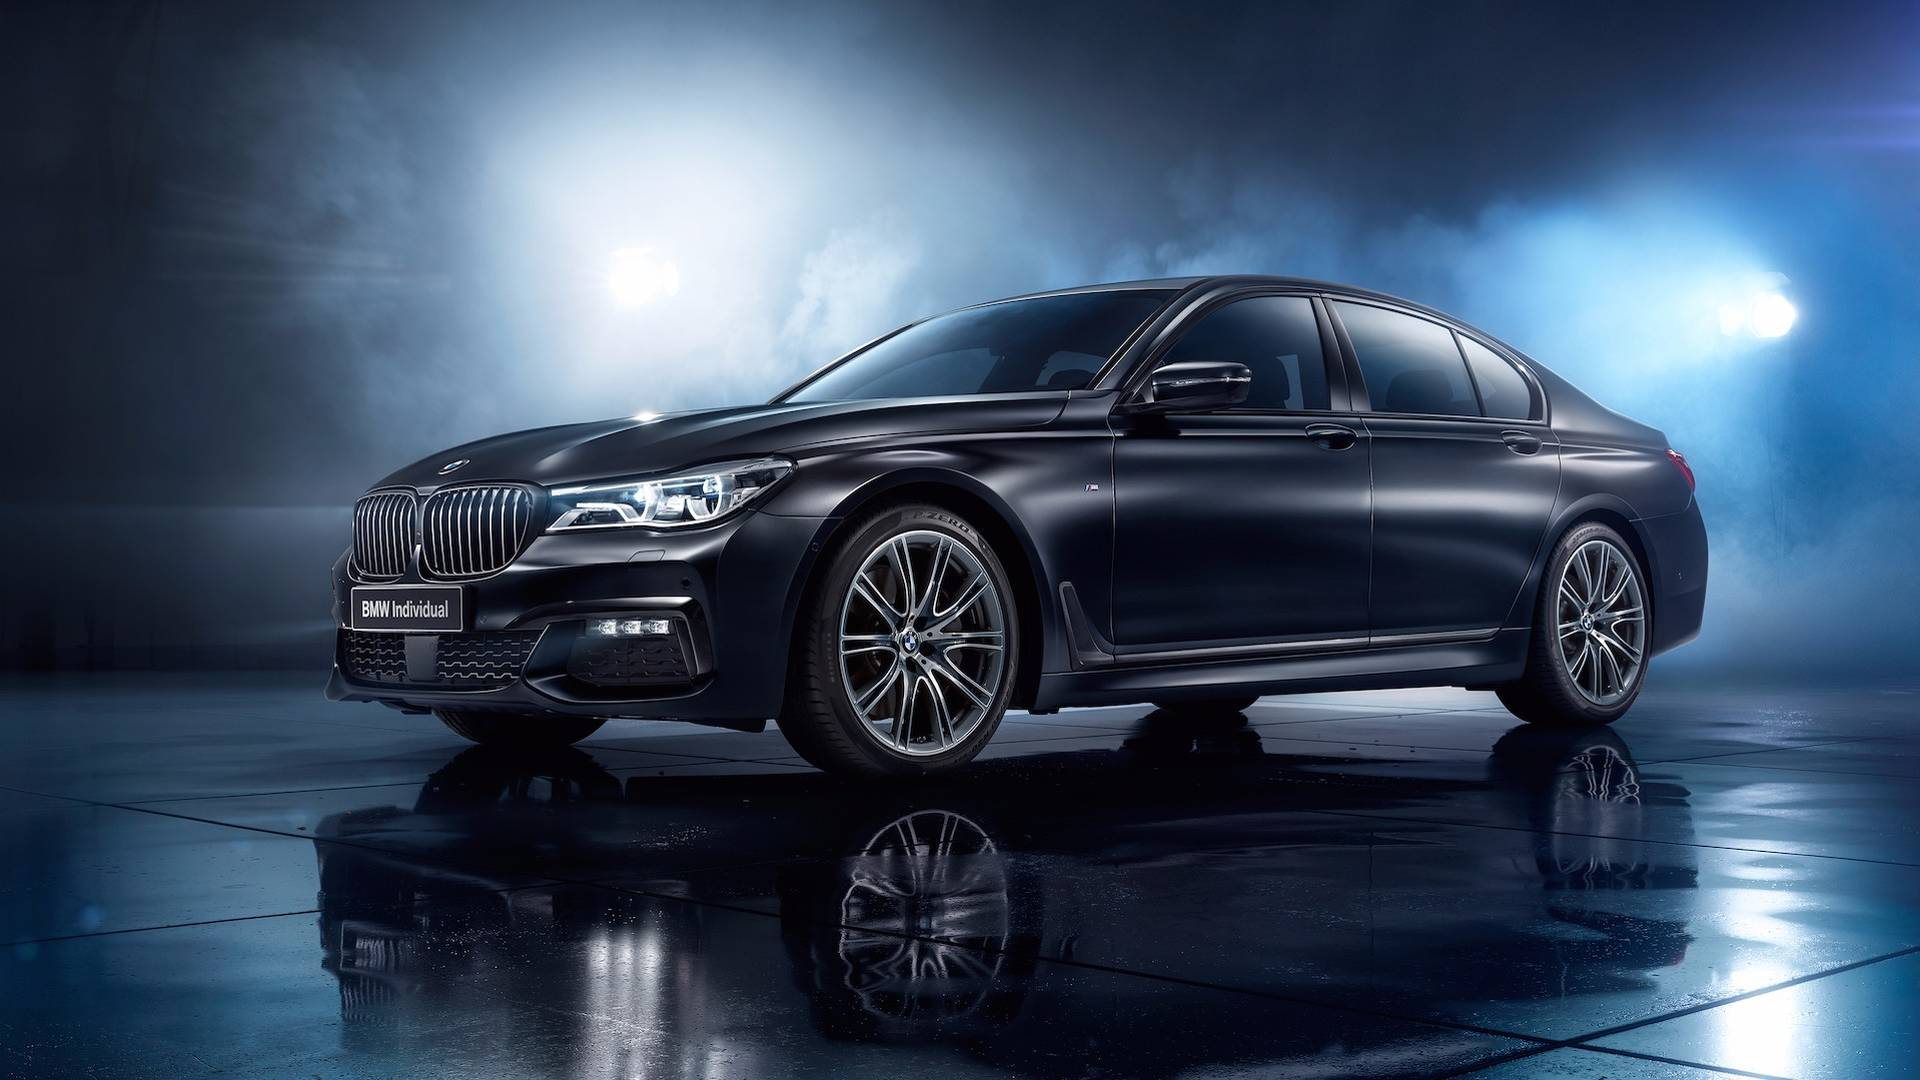 bmw-7-series-individual-edition-black-ice (1)